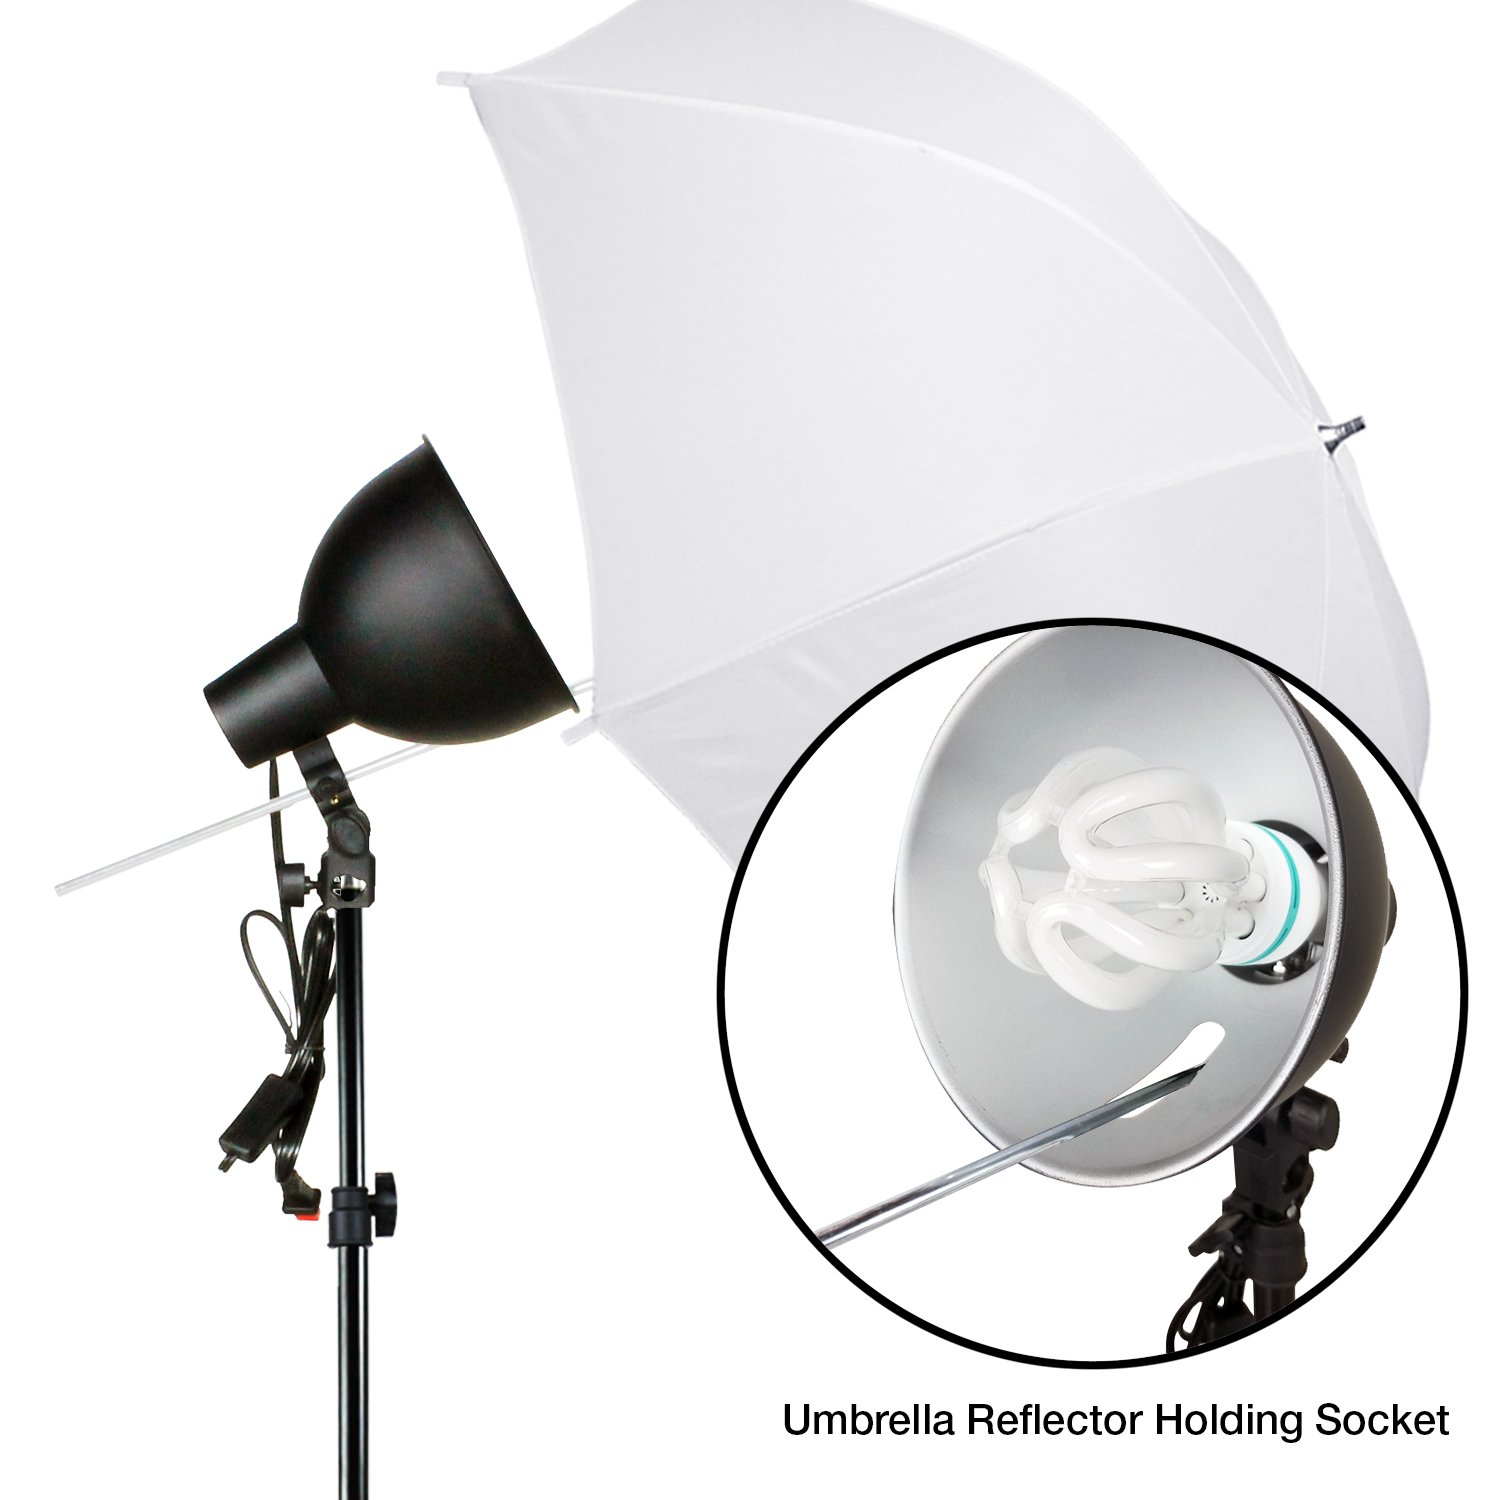 LimoStudio 2-Pack Reflector Dish Metal Lamp with Continuous Lighting Bulb and Umbrella Reflector, Lamp Socket and Umbrella Reflector Holding Slot, Light Stand Tripod, Photo Studio, AGG2604V2 by LimoStudio (Image #5)